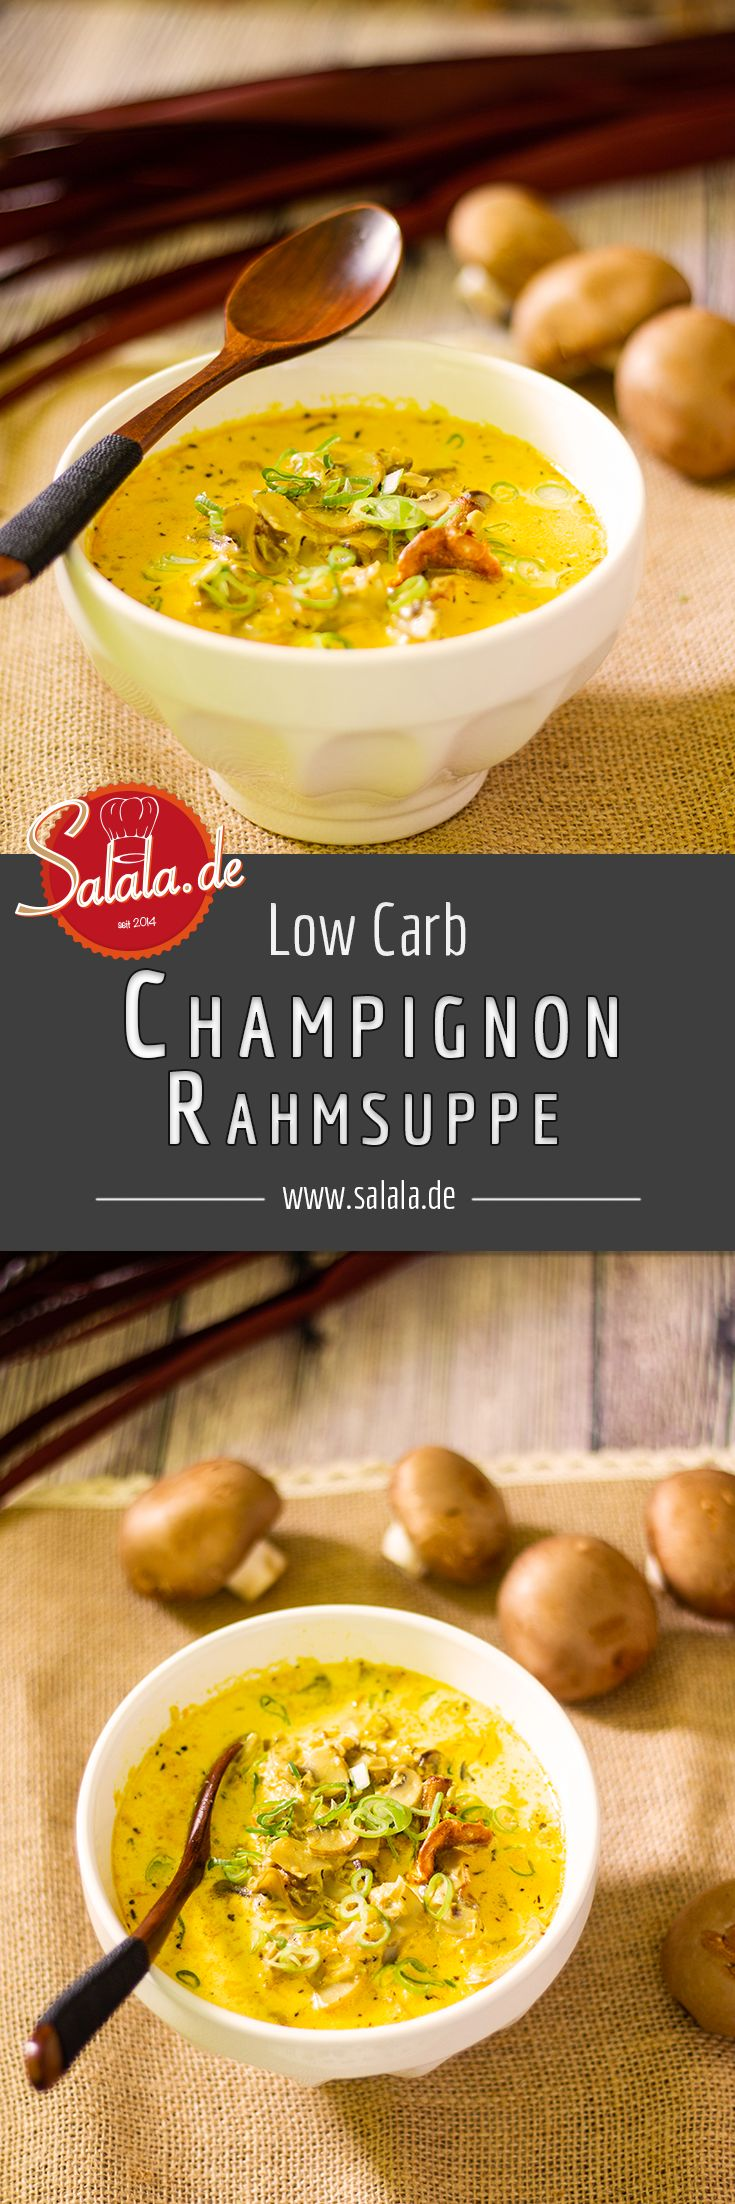 Low Carb Champignonscremesuppe – selbst gemacht